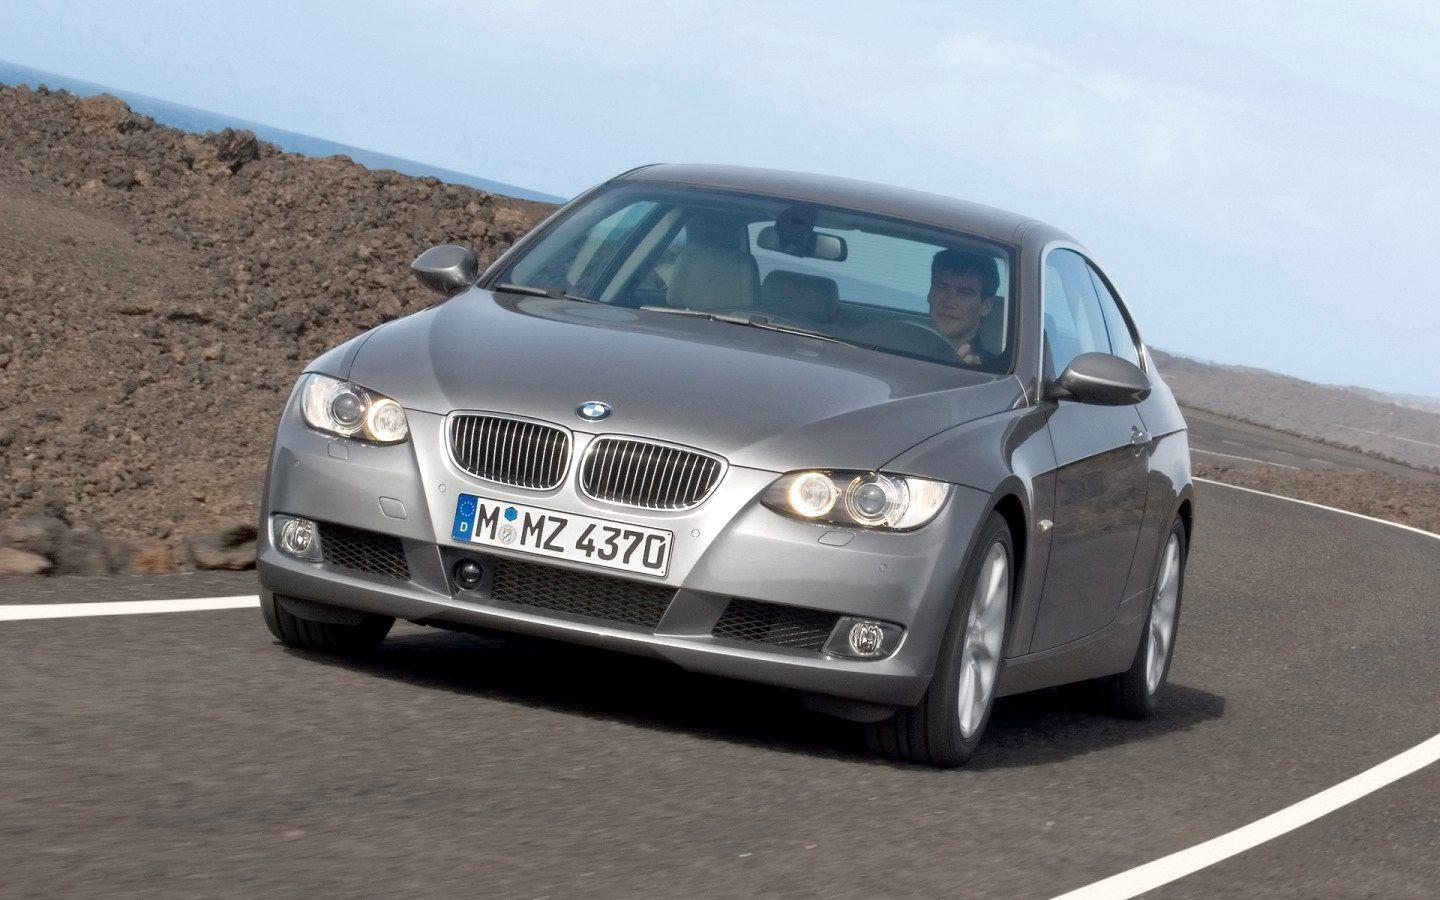 2007 BMW 335i Coupe Wallpaper 05 - 1440x900